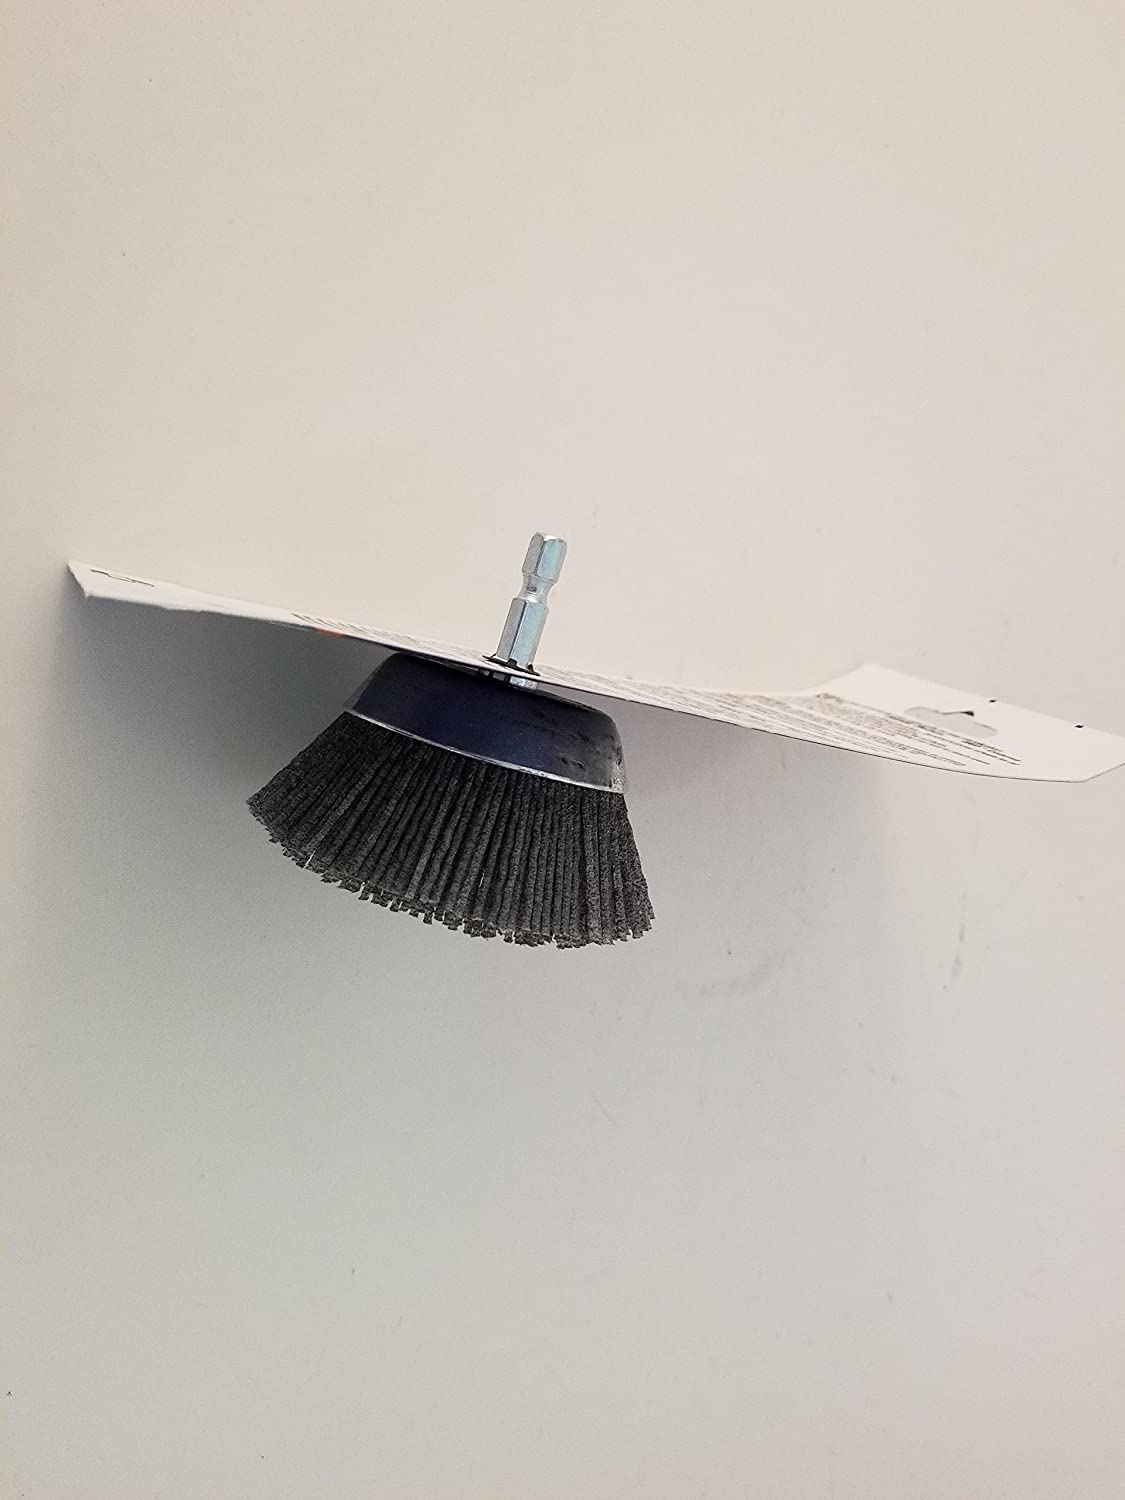 Dico 541-774-21//2 Nyalox Cup Brush 21//2-Inch Grey 80 Grit Dico Products